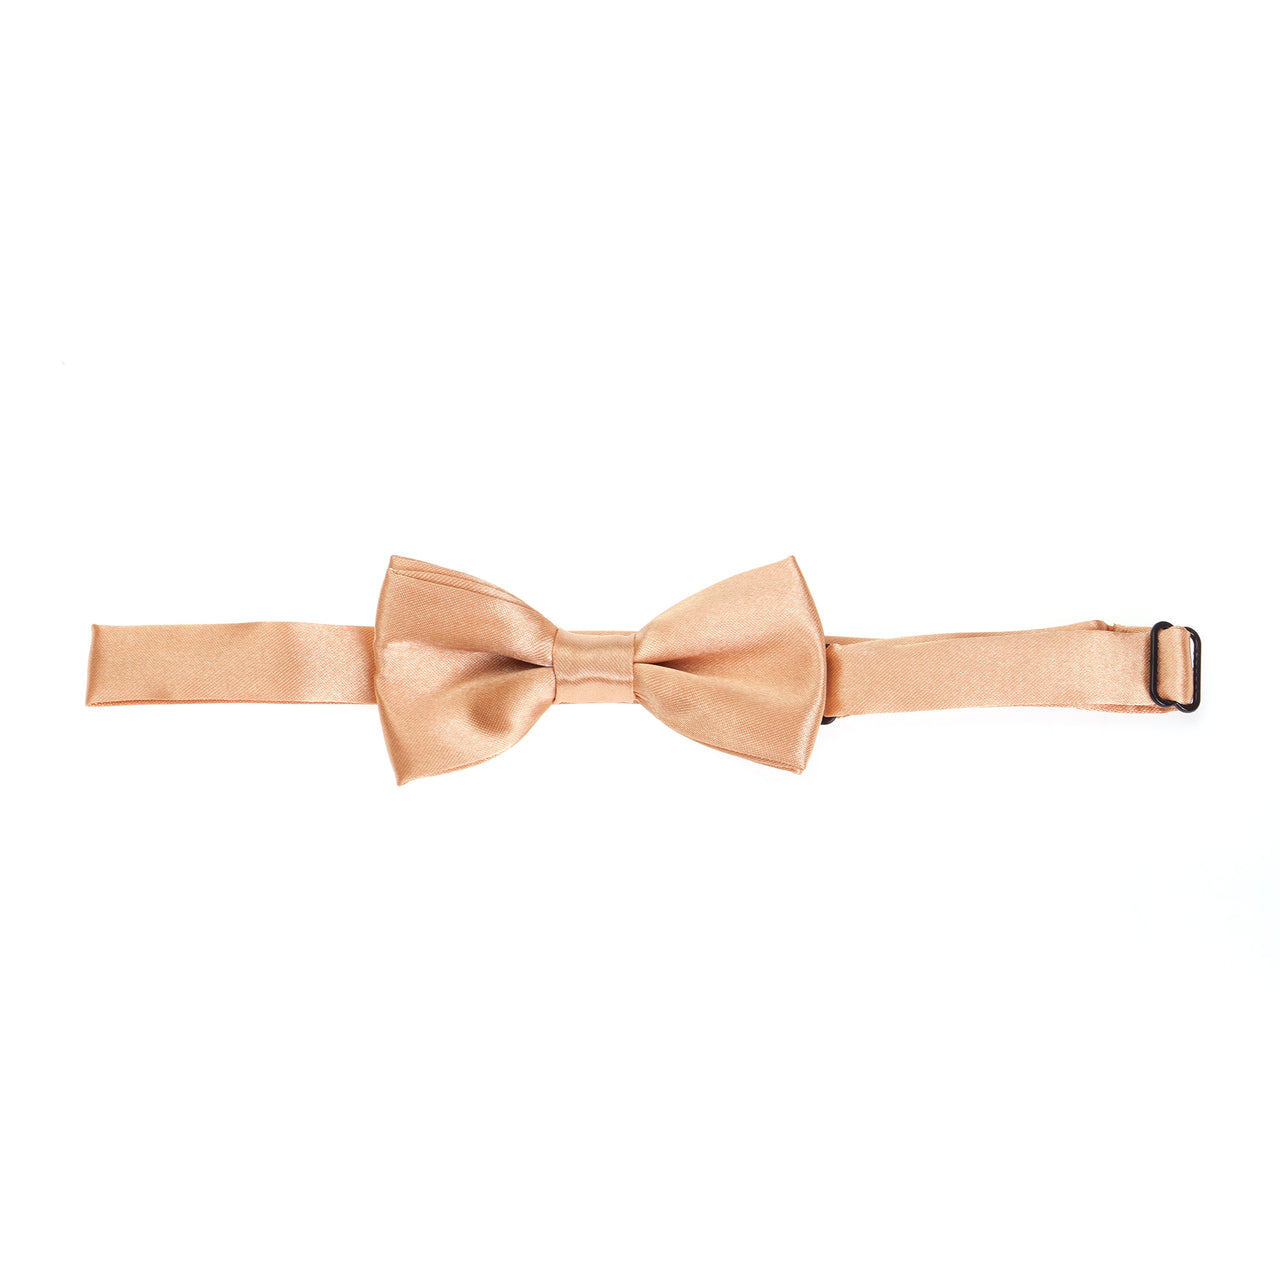 Kids Pre-tied Plain Satin Bow Tie - Copper Gold